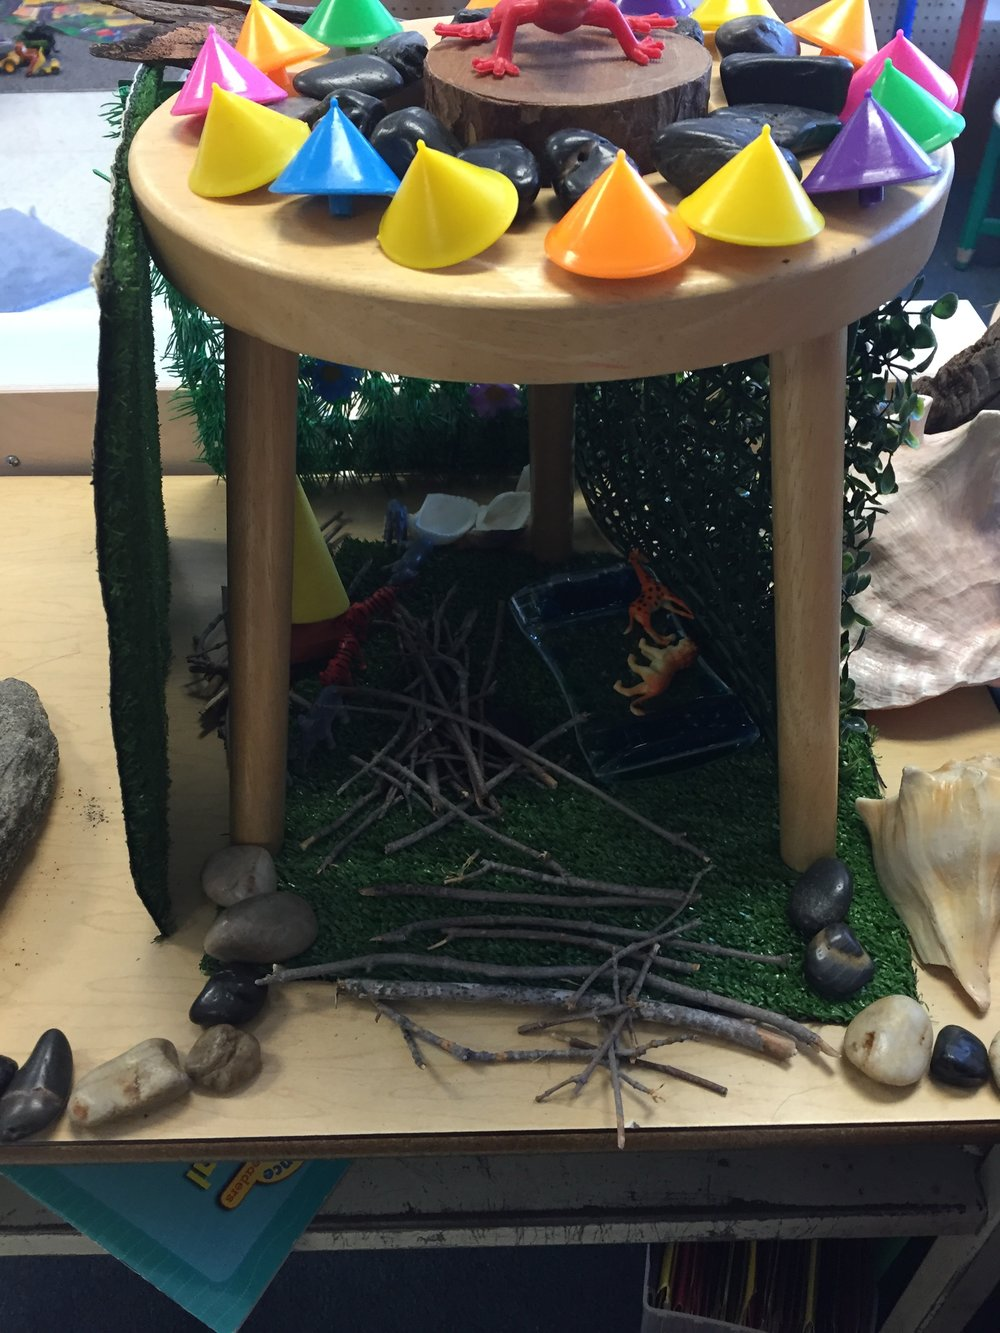 This is a great example of what students can create when left to their own inquiries and various types of materials.